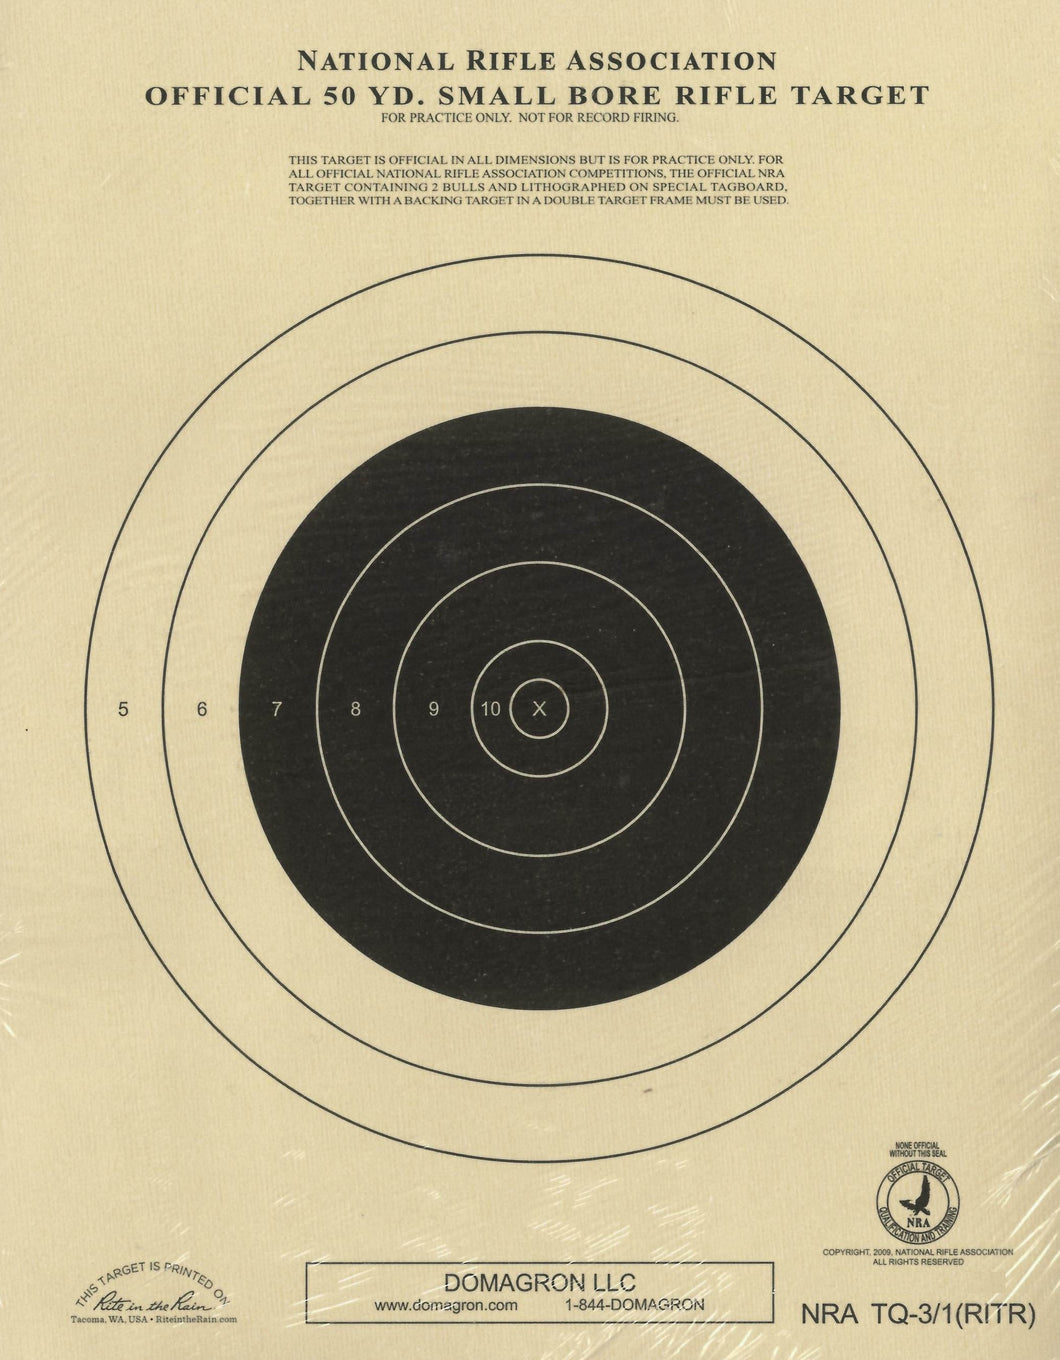 TQ-3/1 Weather Resistant 50 Yard Small Bore Rigle Target Official NRA Target (48 Pack) with Rite in The Rain Technology